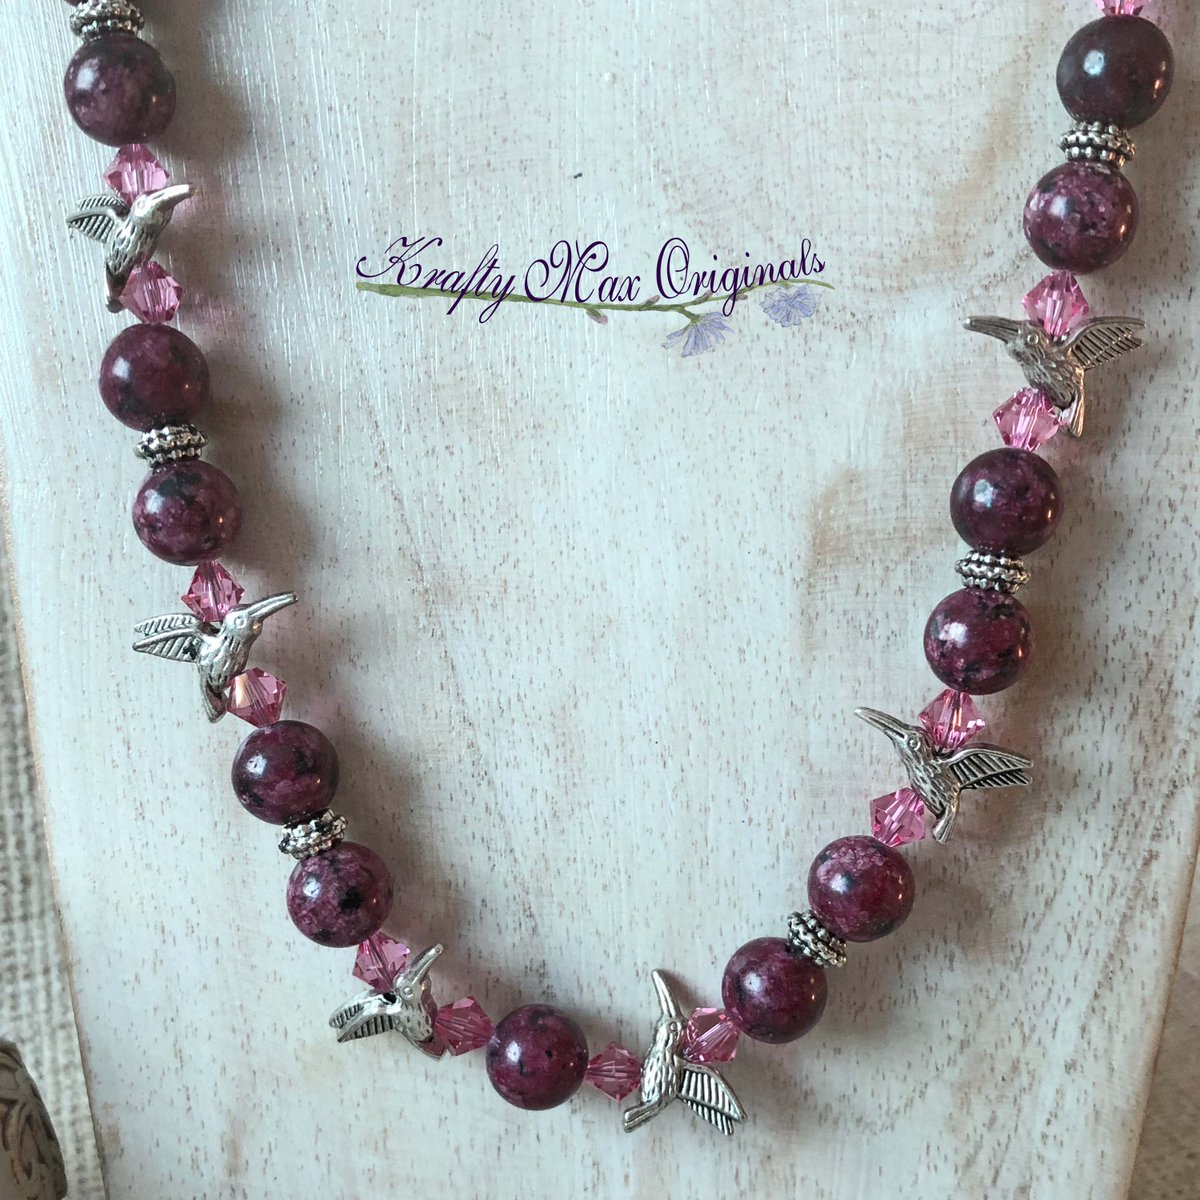 Burgundy Gemstone and Pink Swarovski Crystals Necklace Set with Hummingbirds (discounted from $53 down to $24)  #handmade #jewelry #buyhandmade #handmadelove #handcrafted #kraftymax #kmax #discount #sale #bargain #save #clearance